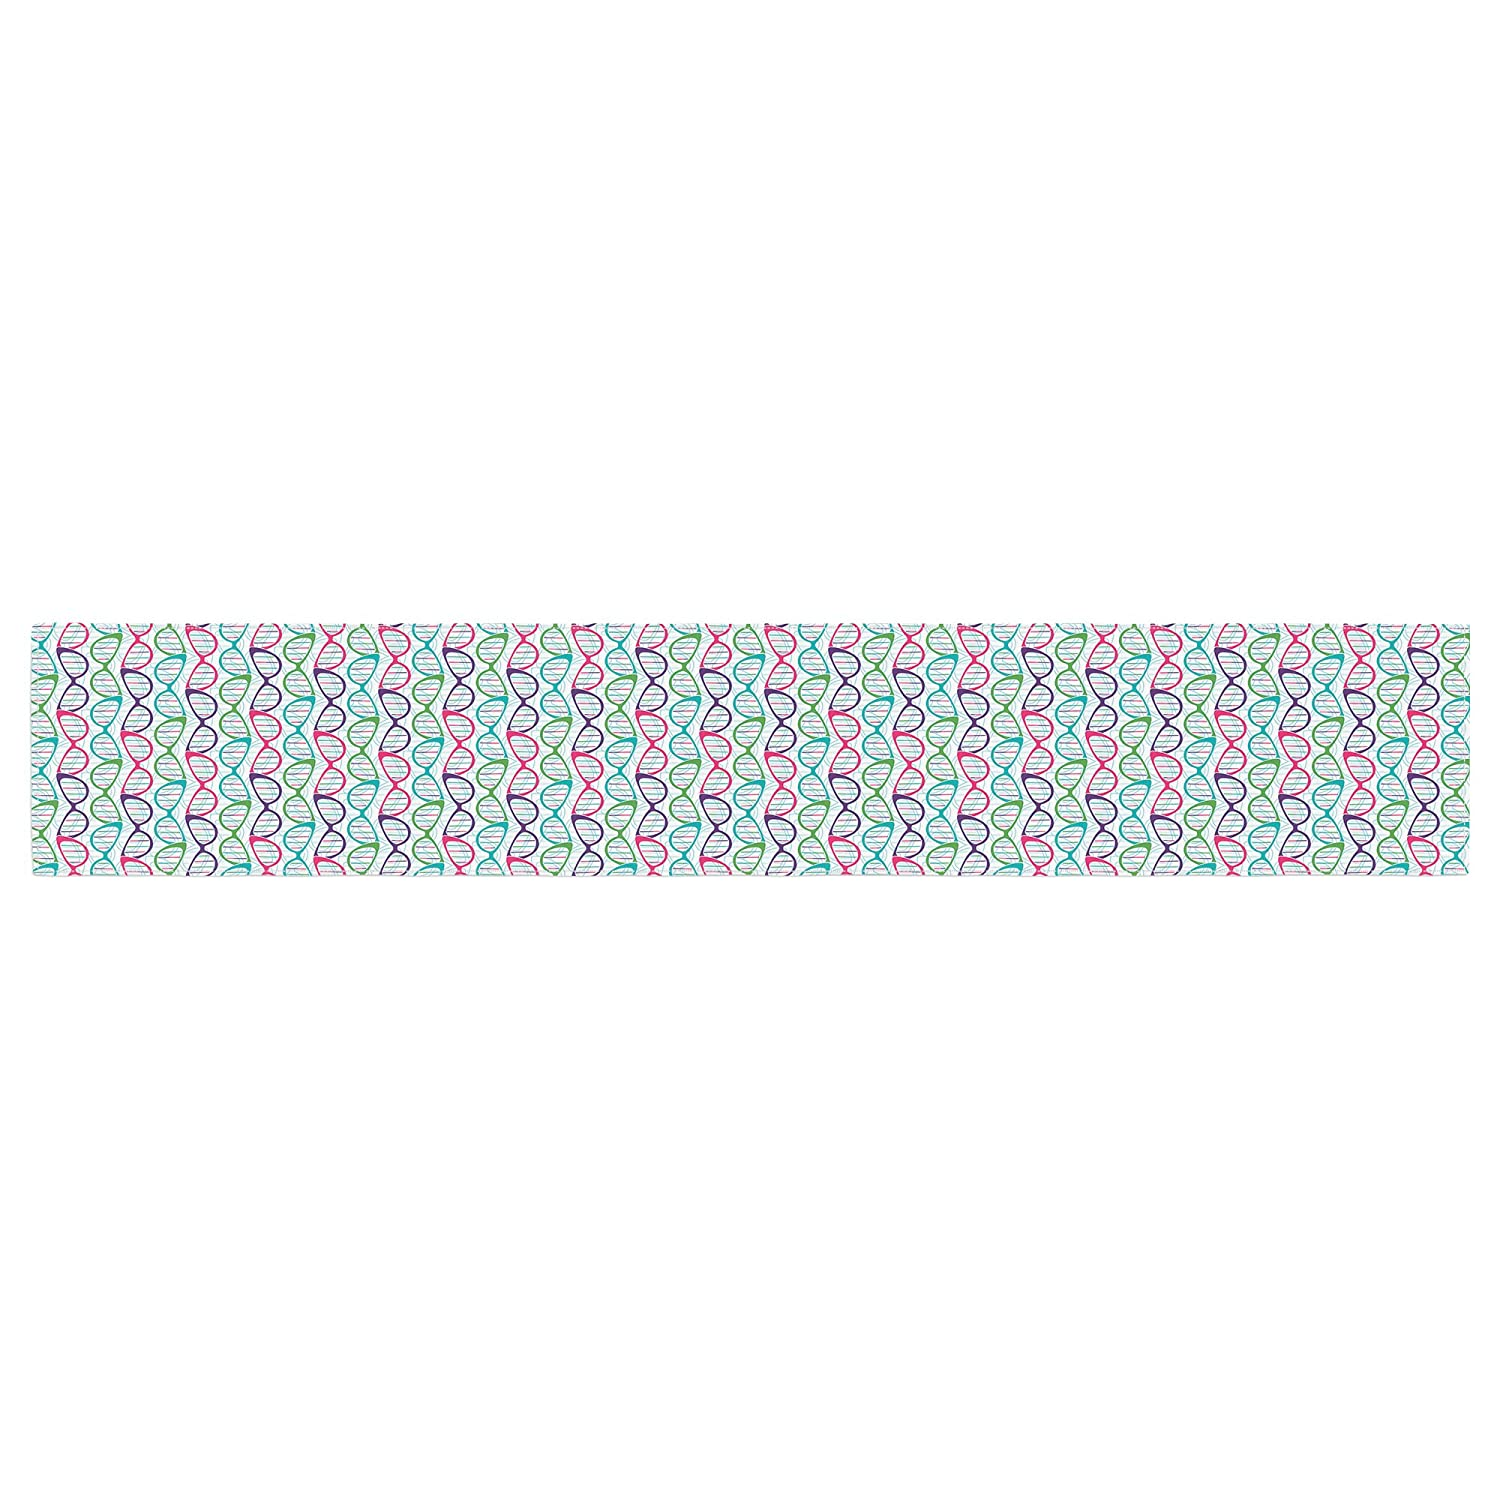 KESS InHouse Holly Helgeson Geeky DNA Pink Blue Table Runner 16 x 180